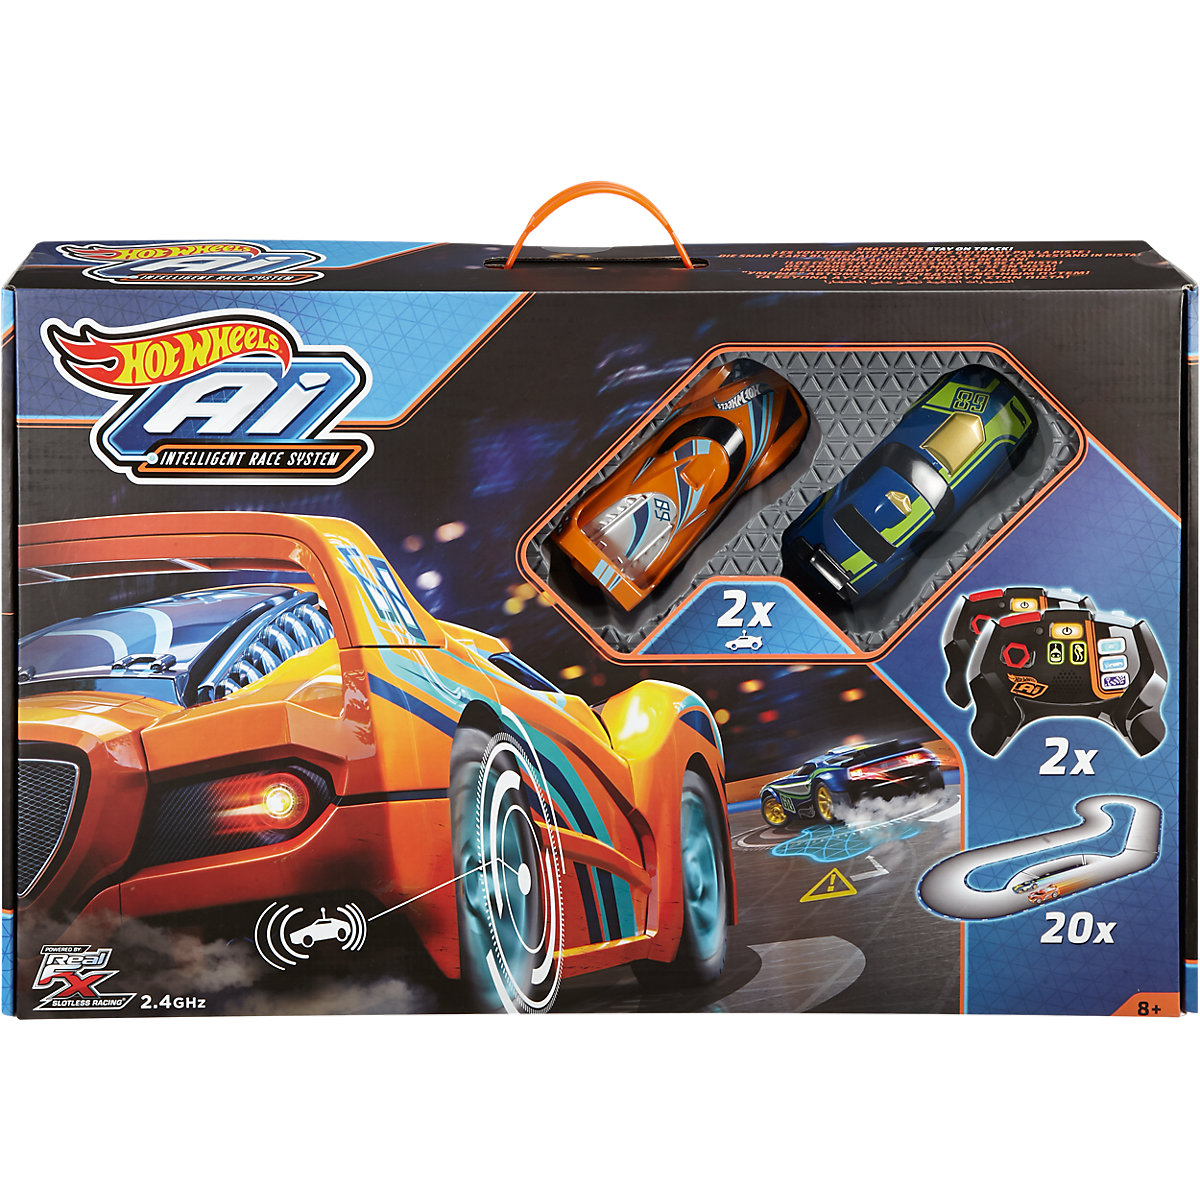 Mattel Hot Wheels A.I. Intelligent Race System